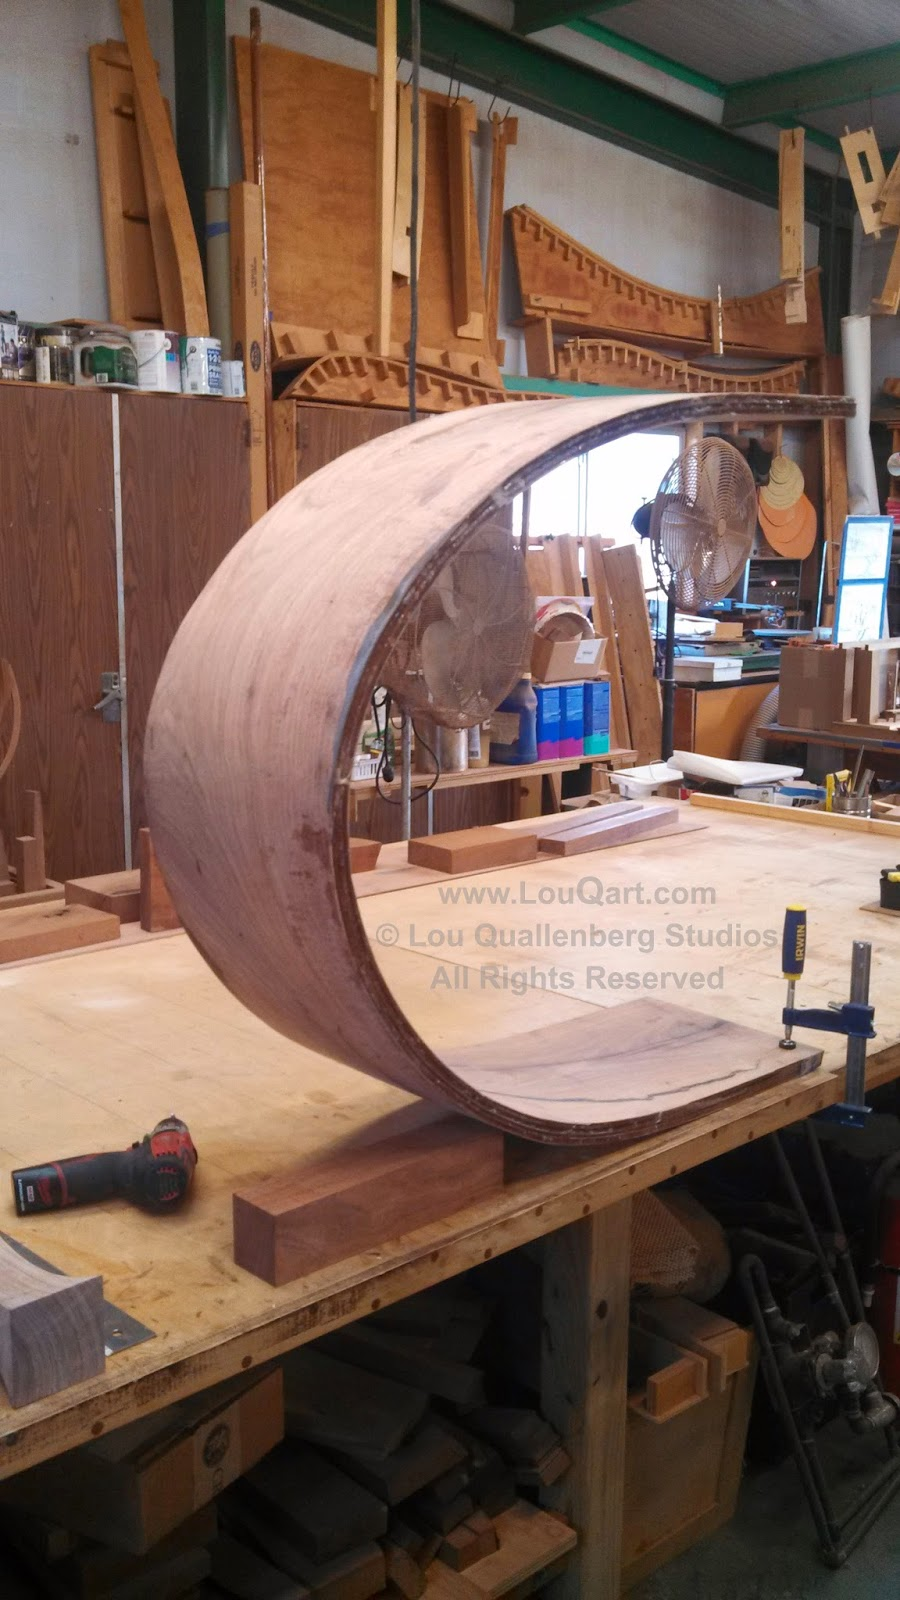 Laminated Mesquite Curve by Lou Qualleneberg